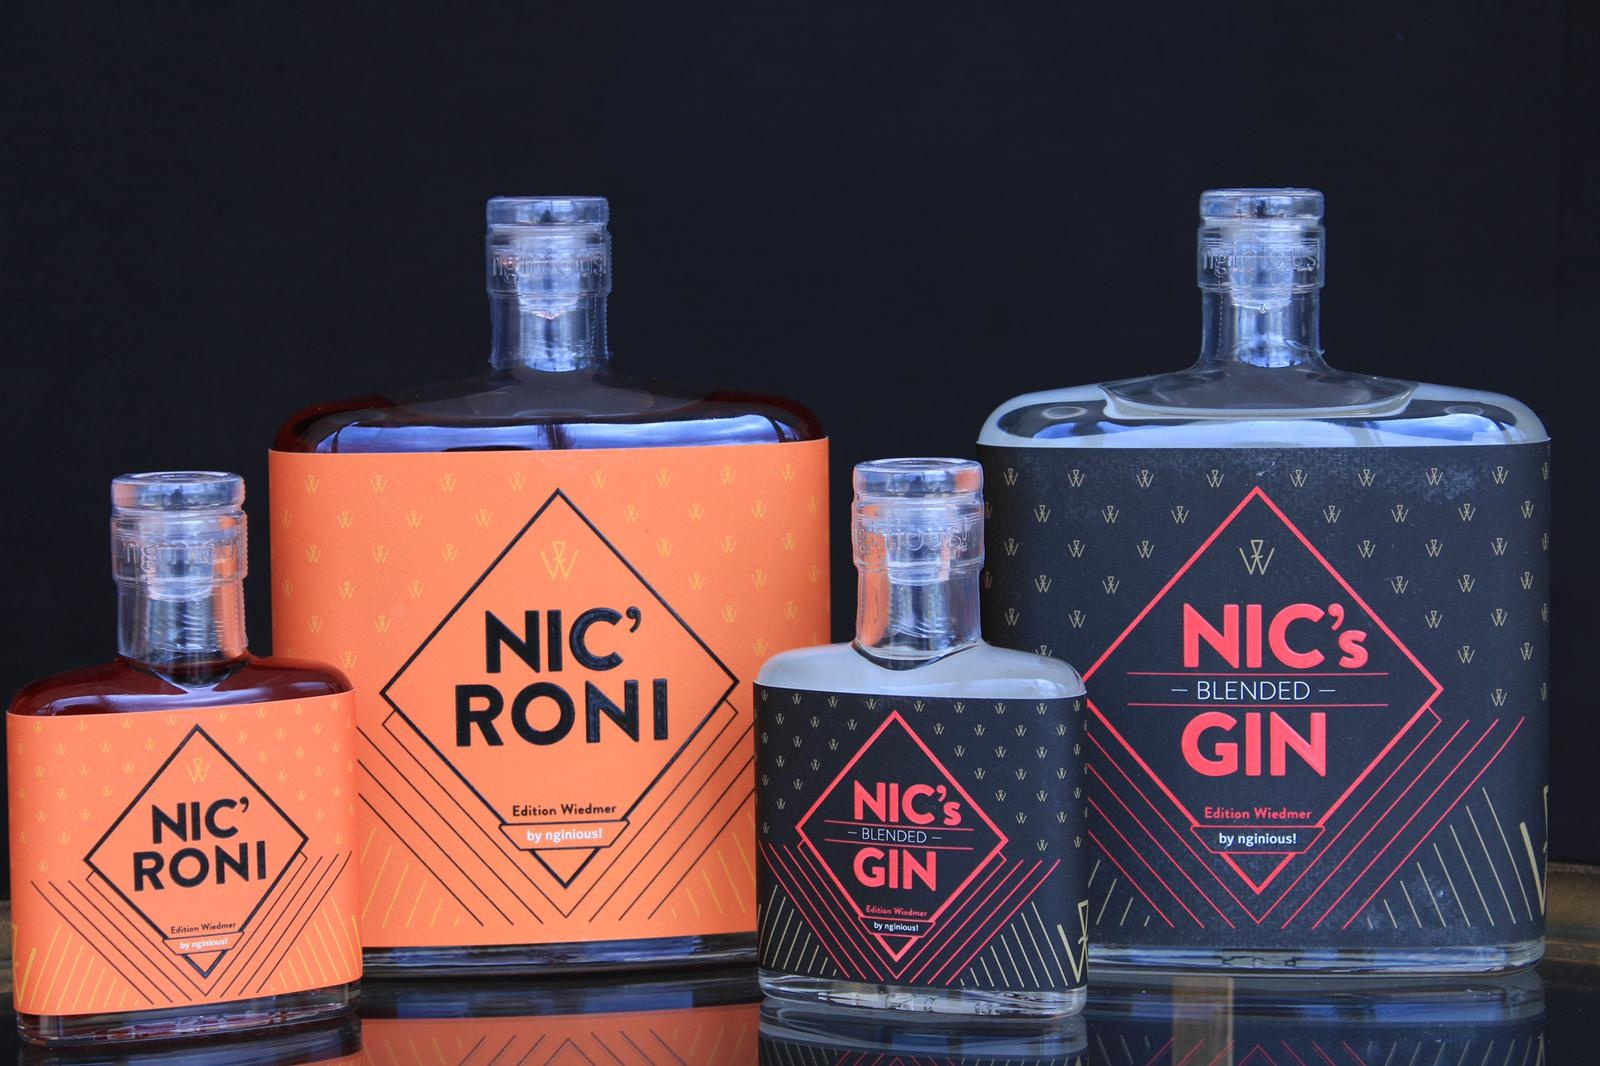 nginious! NIC's blended GIN by nginious!